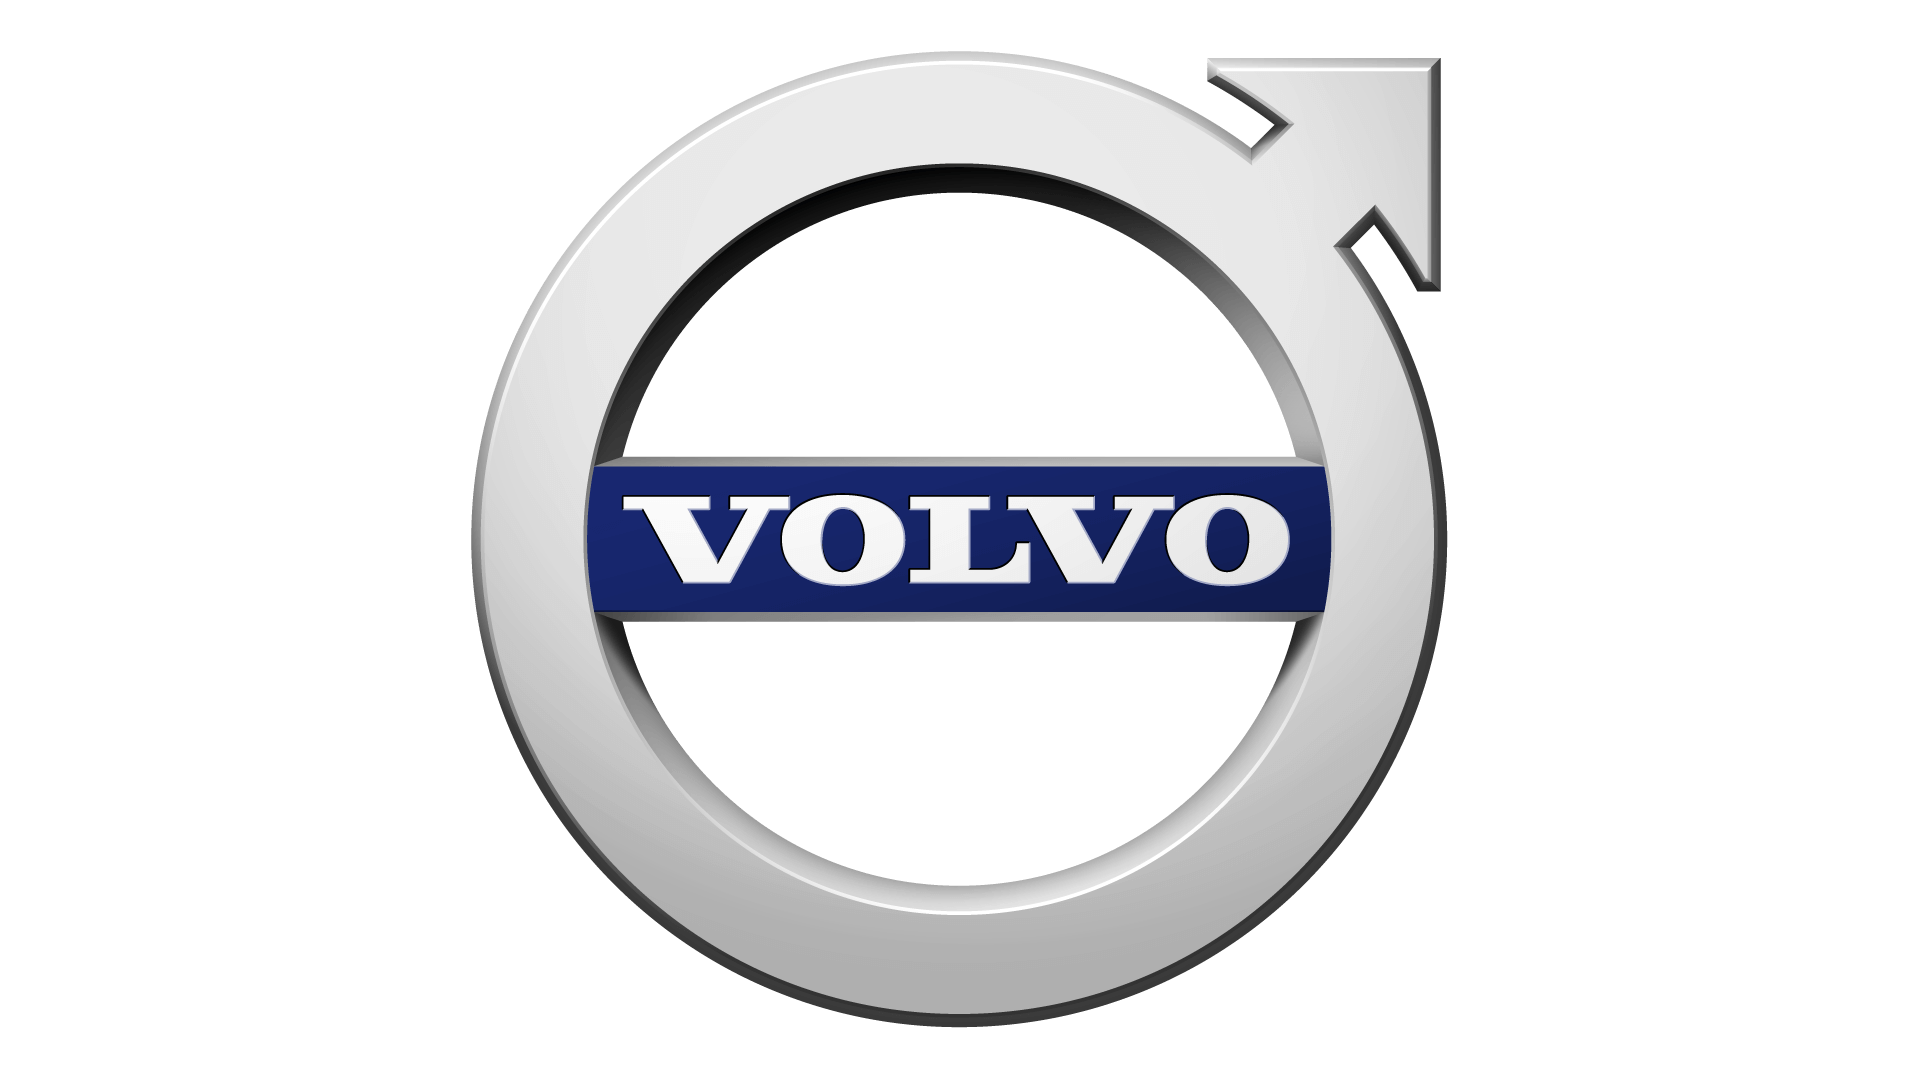 http://rpmautolease.com/wp-content/uploads/2017/08/Volvo-logo-2014-1920x1080.png